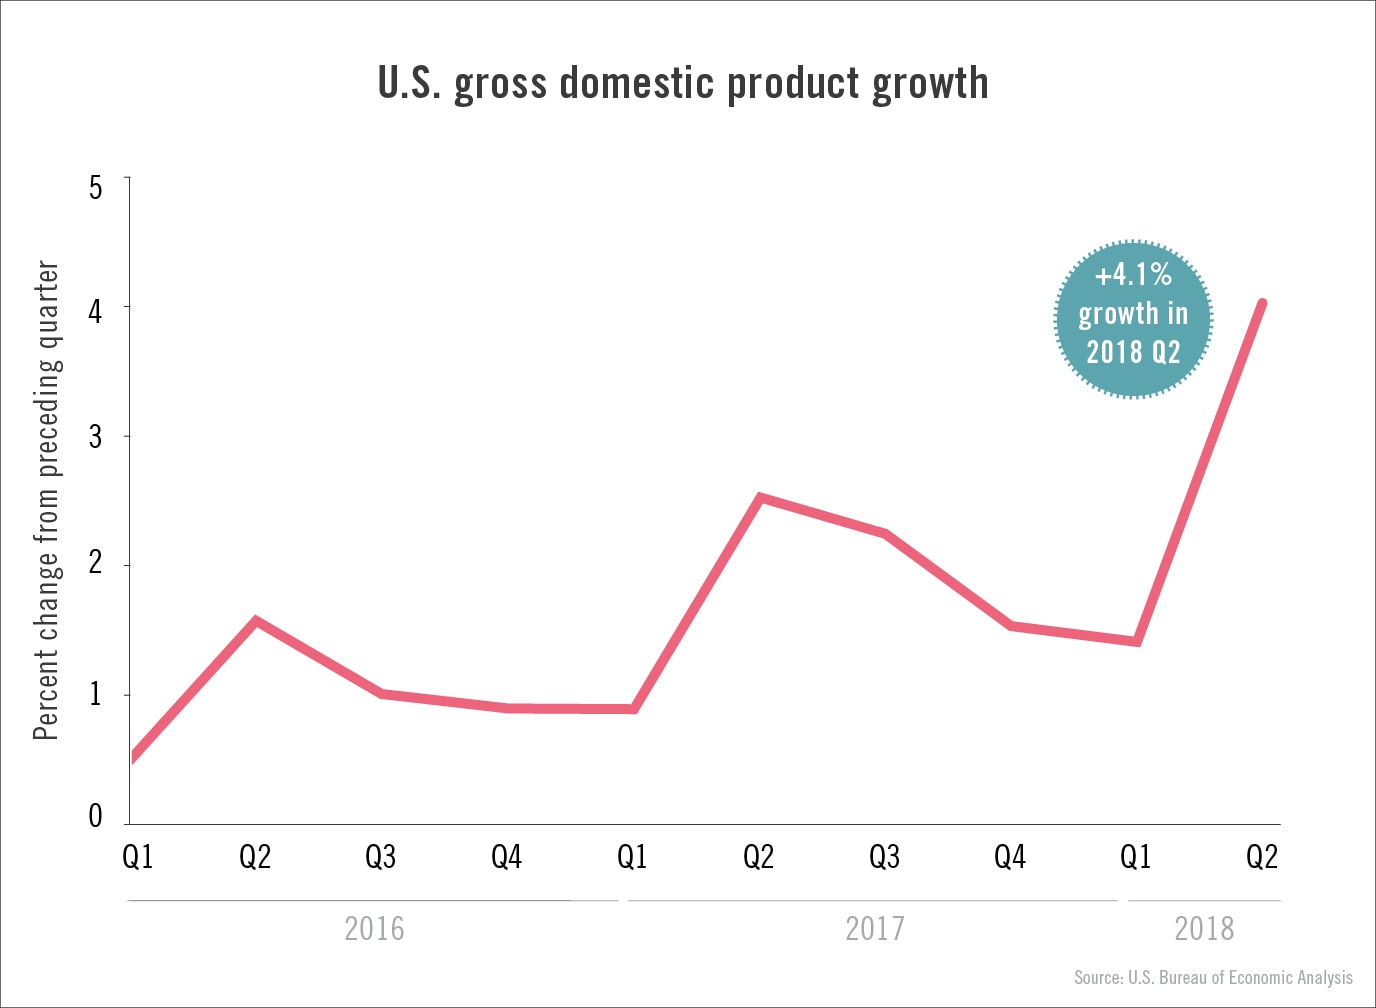 Chart showing U.S. gross domestic product growth 2016-2018 (State Dept./J. Maruszewski)